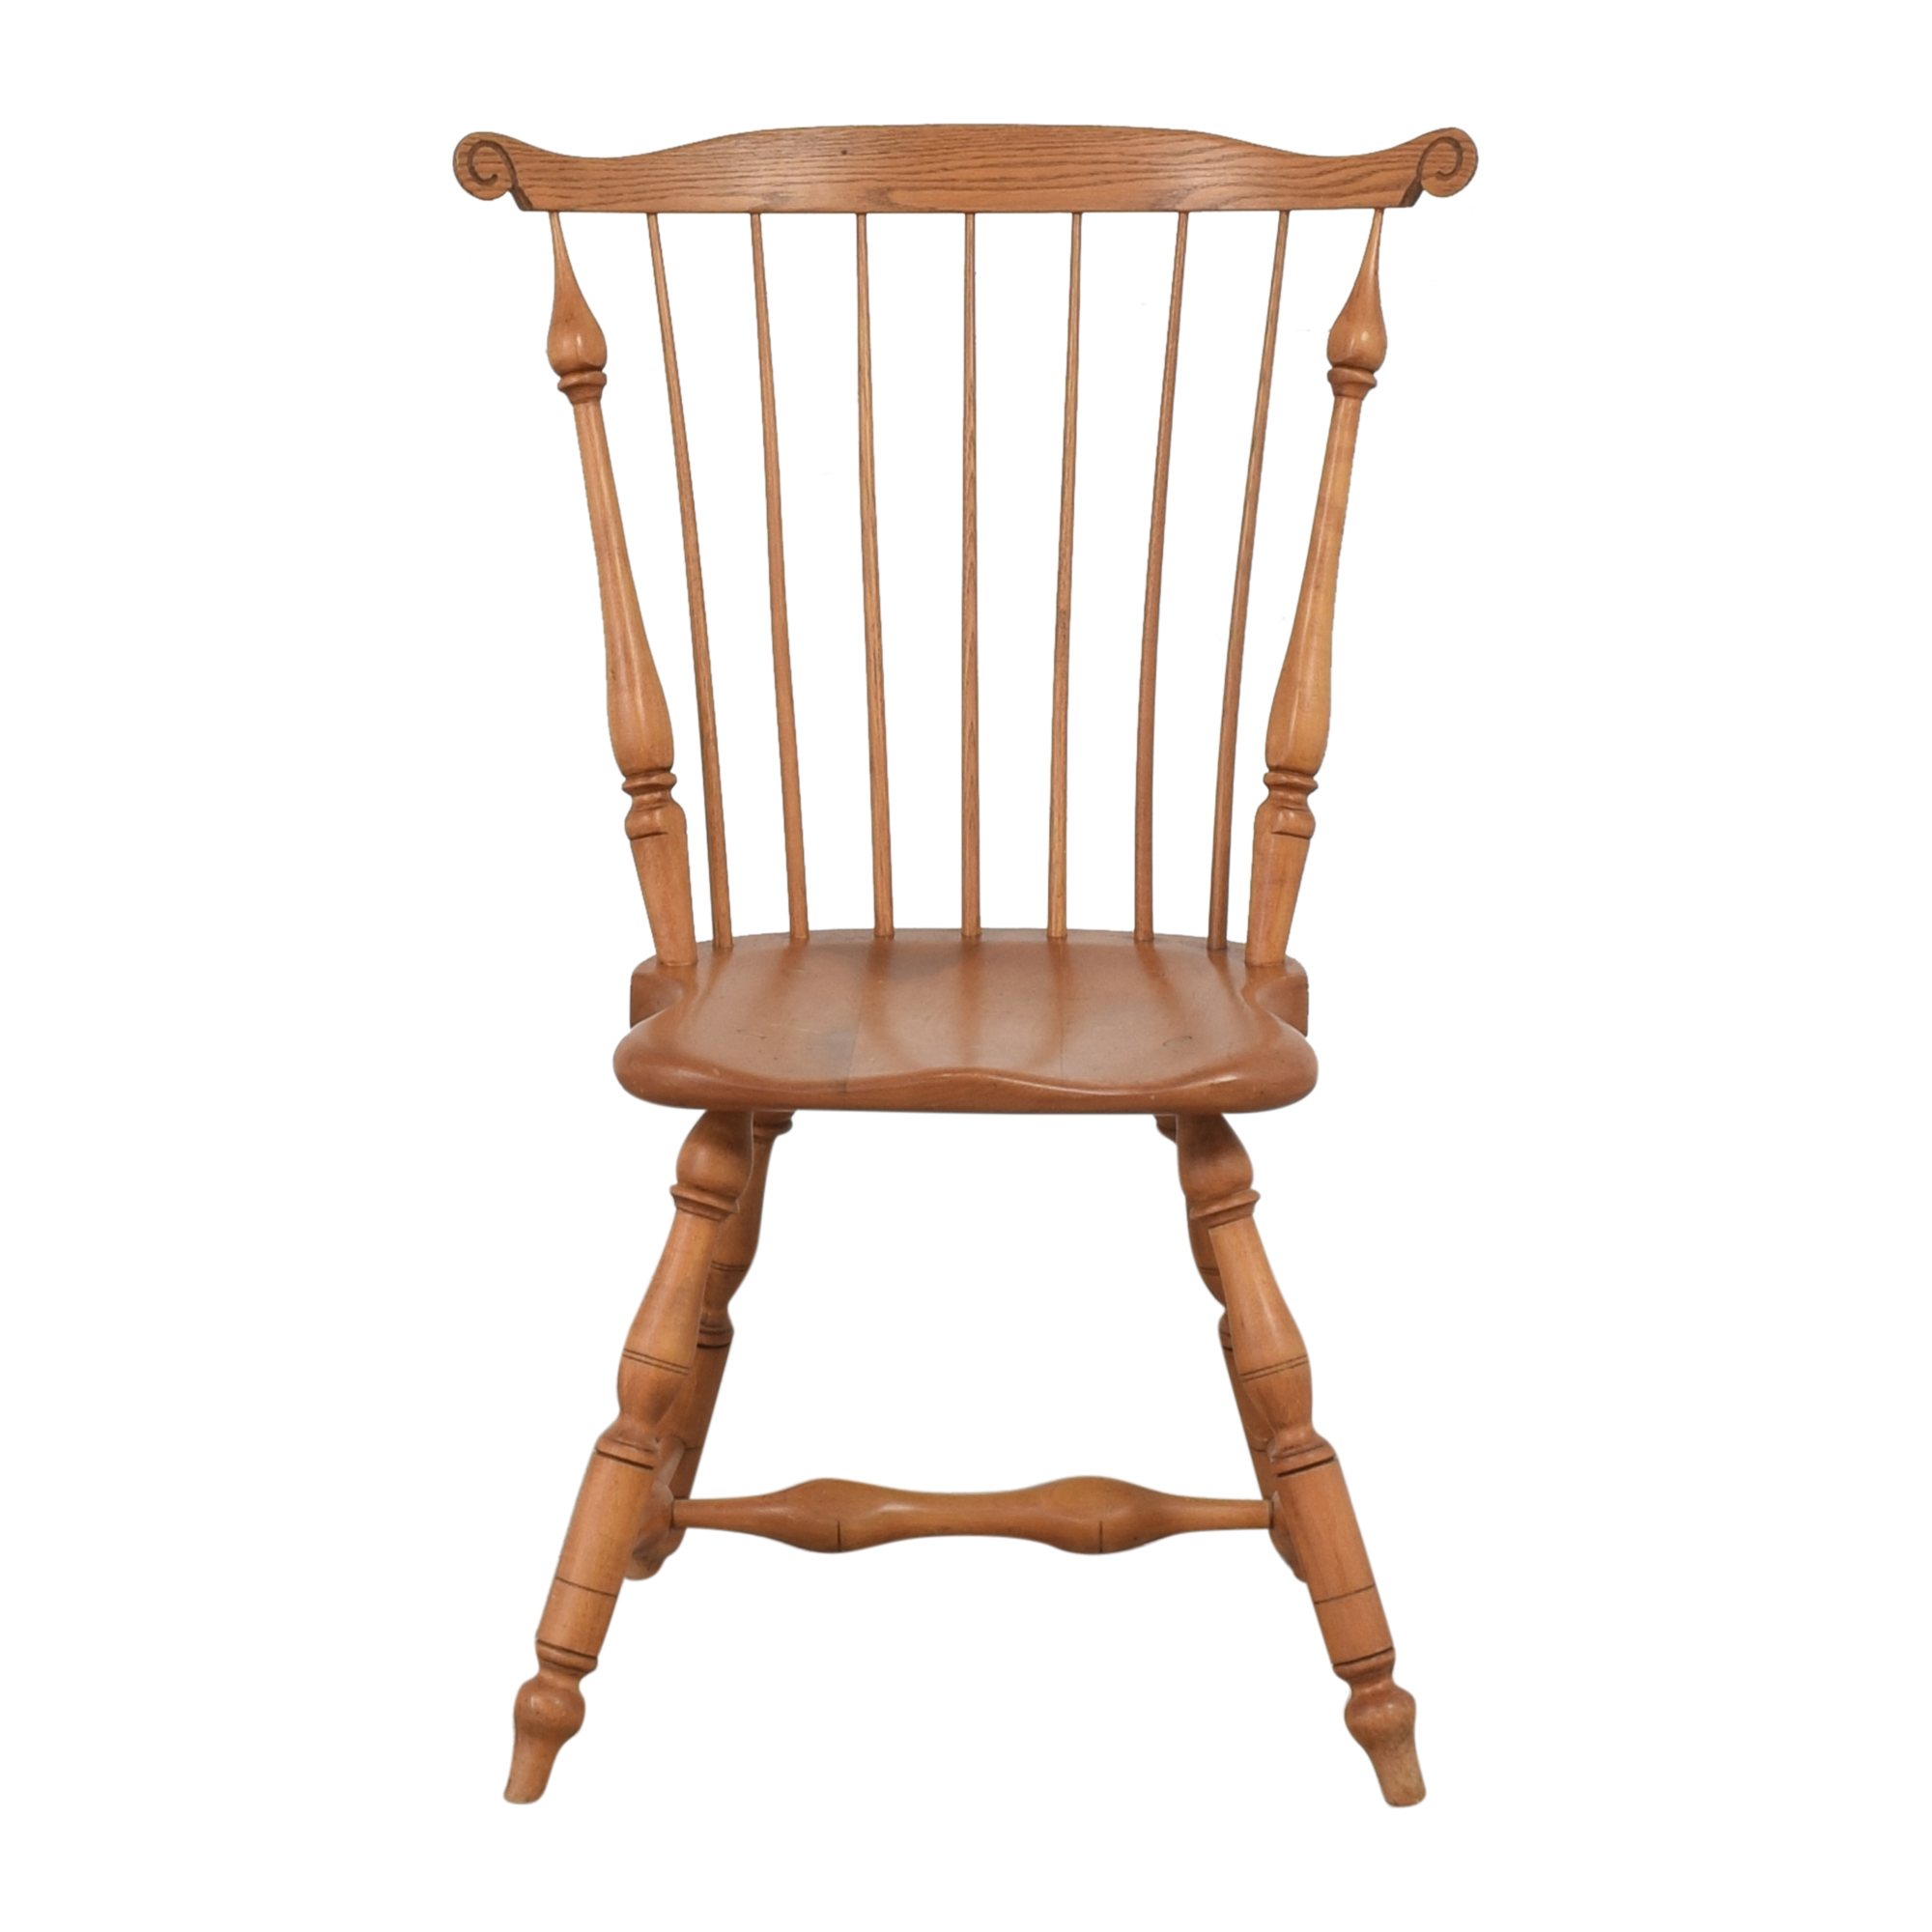 Duckloe Duckloe Comb Back Dining Side Chair second hand